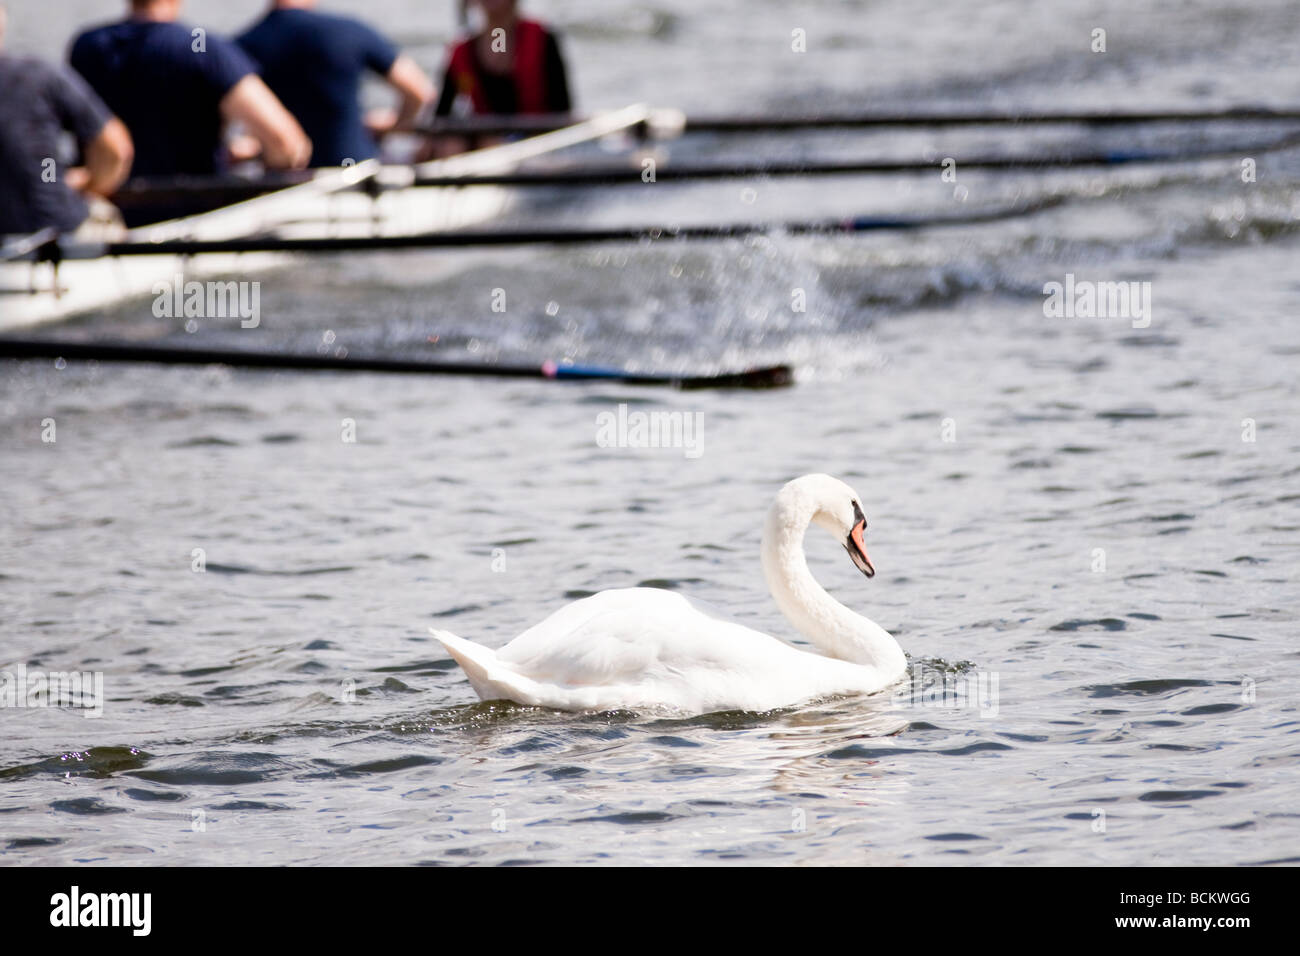 a swan on the River Thames in England swims out of the way of an oncoming rowing team - Kingston upon Thames regatta - Stock Image